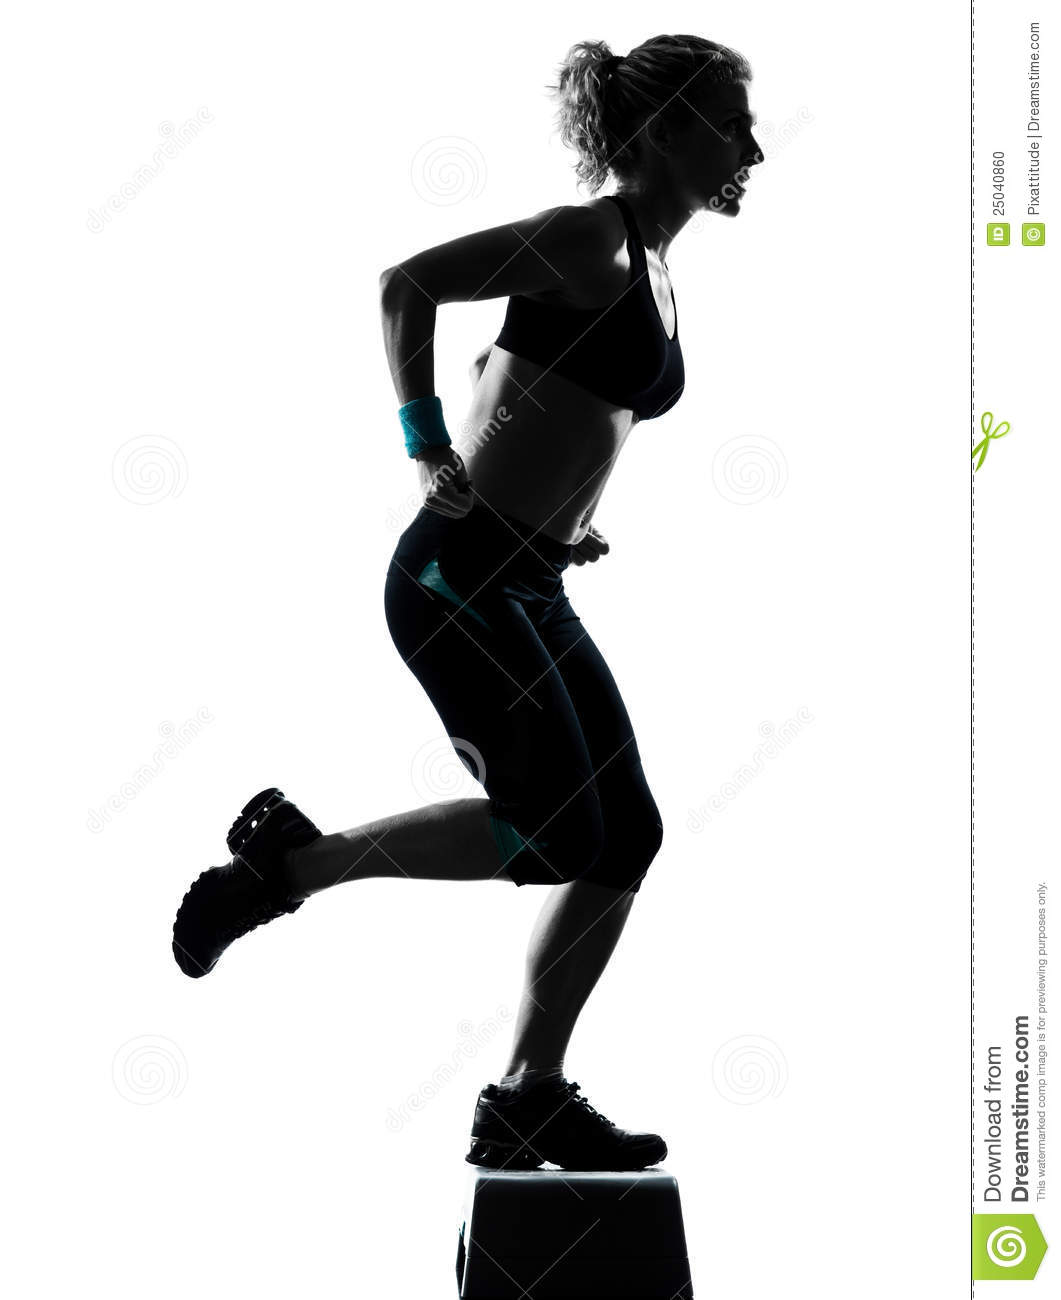 One Woman Exercising Workout Fitness Aerobic Exercise Posture On